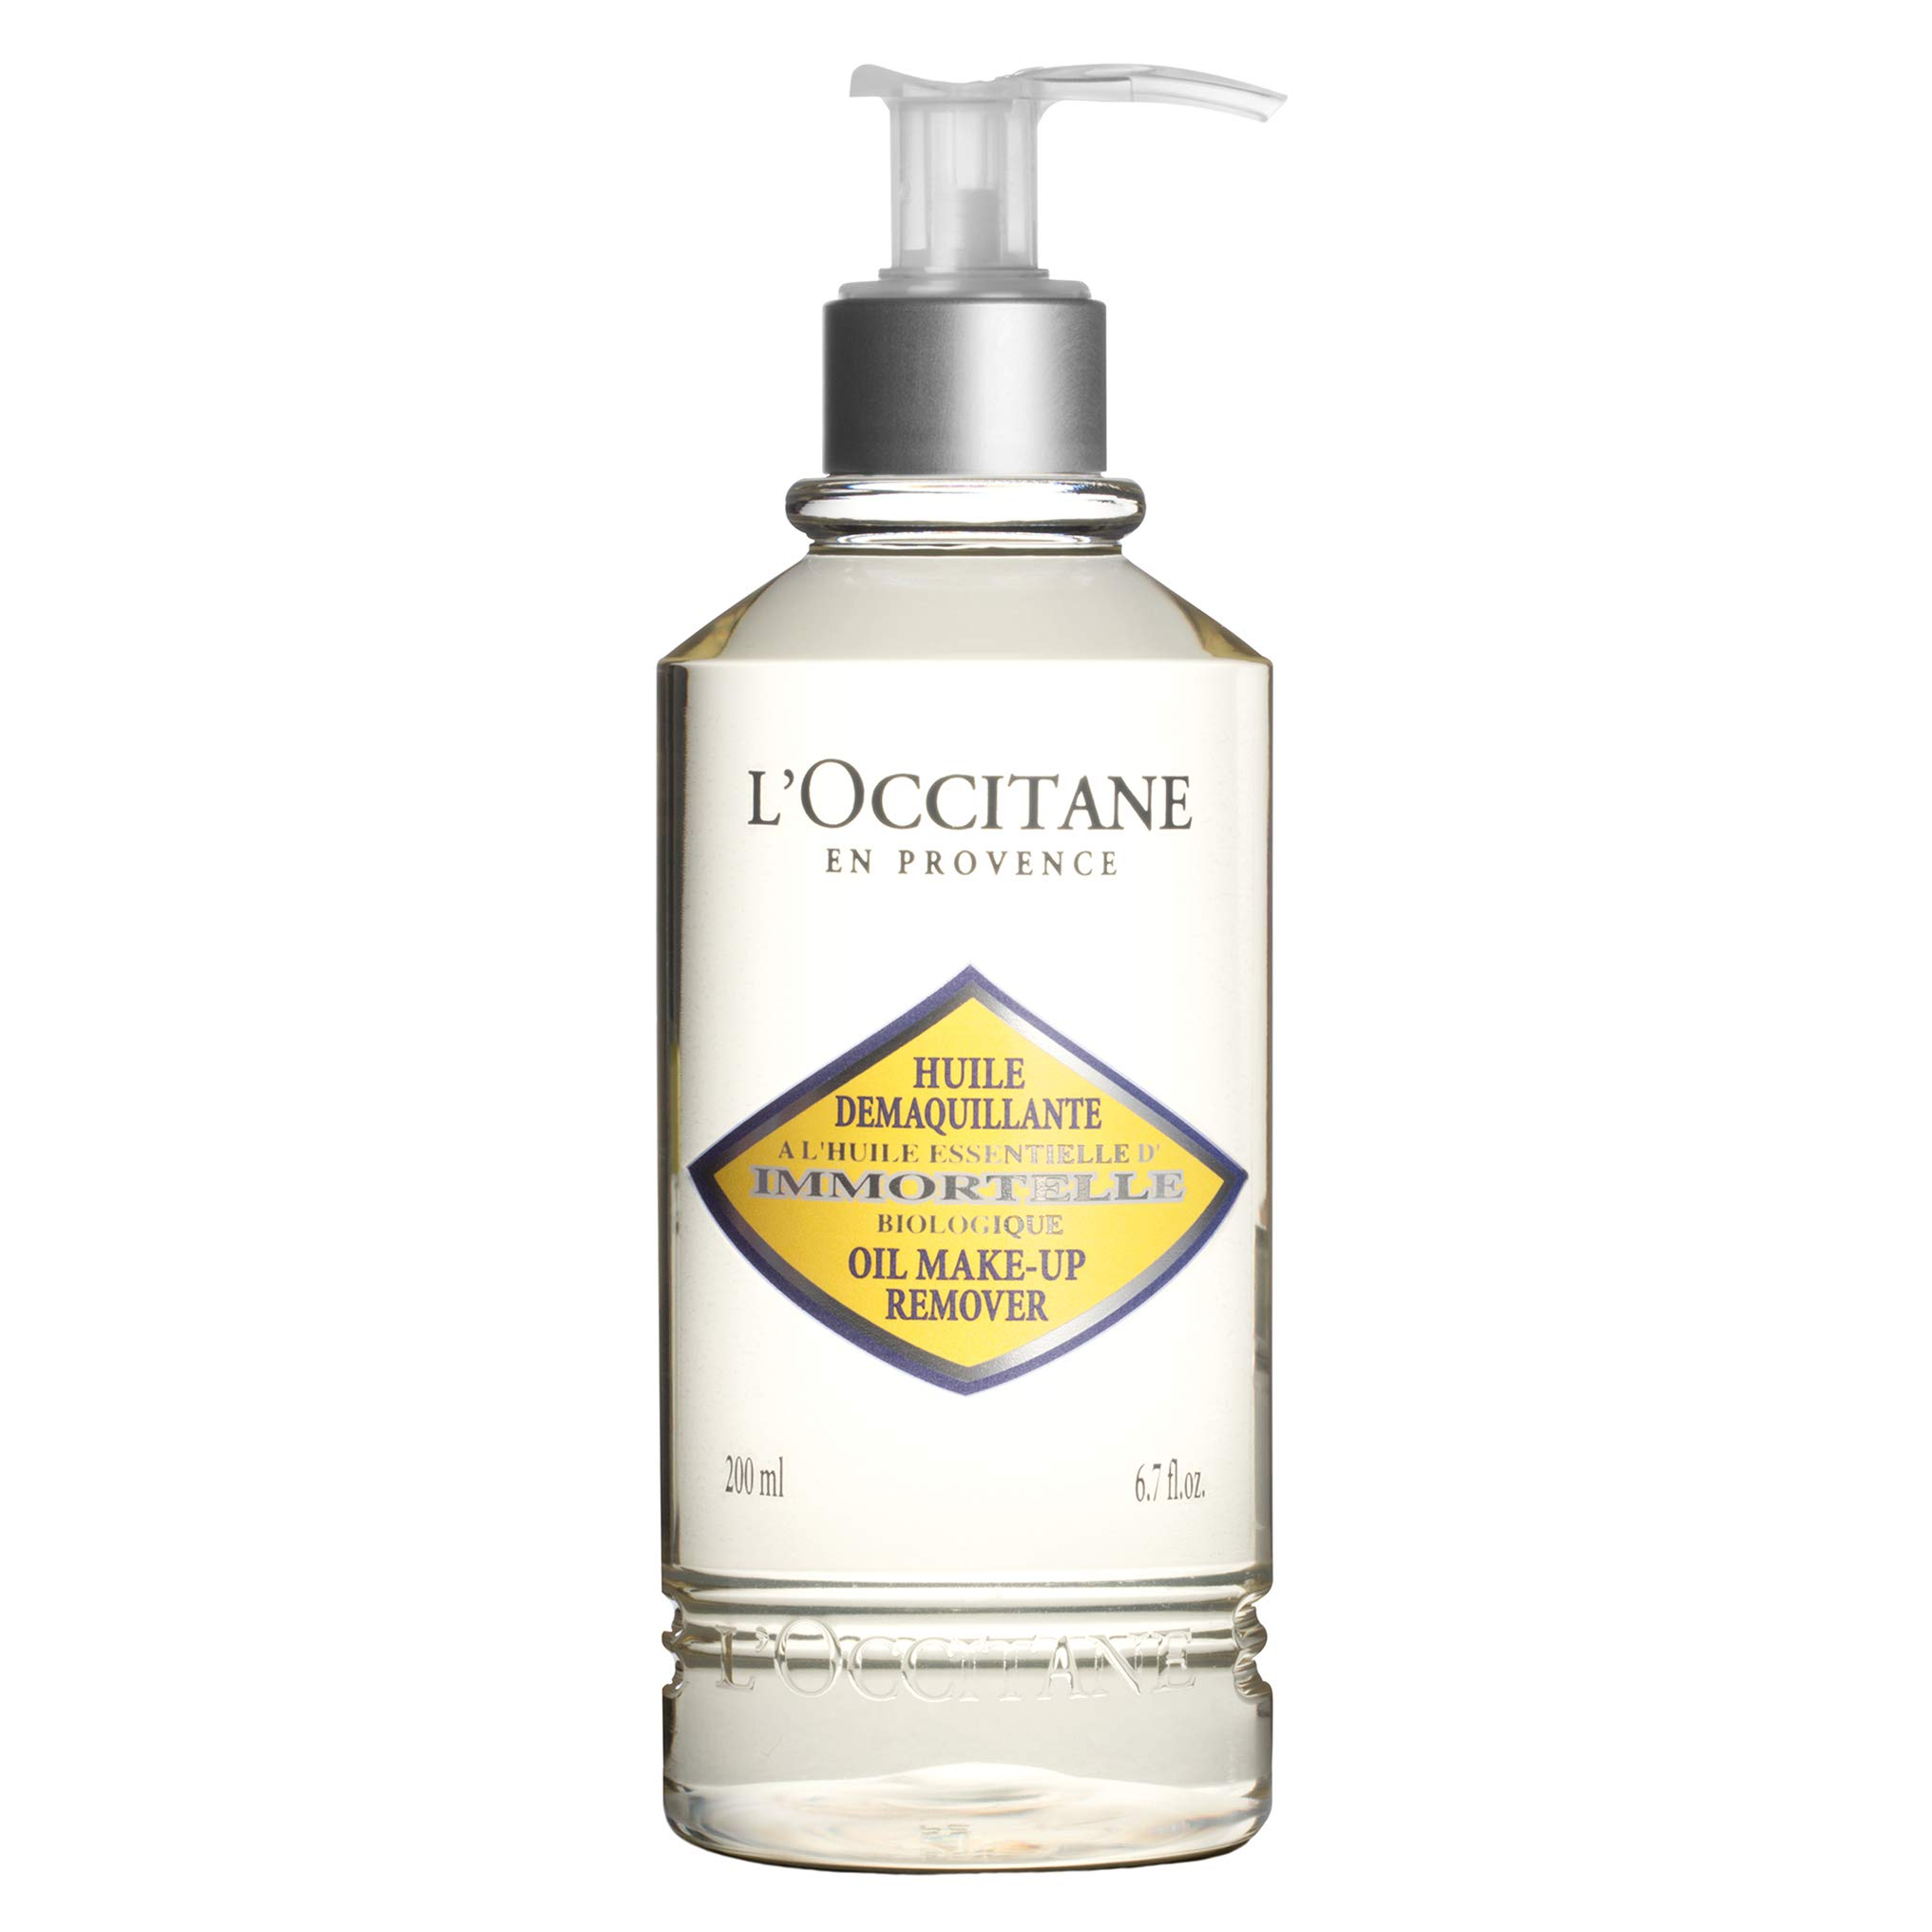 L'Occitane Silky Immortelle Oil Cleanser and Make-up Remover for All Skin Types, 6.7 fl. oz. by L'Occitane